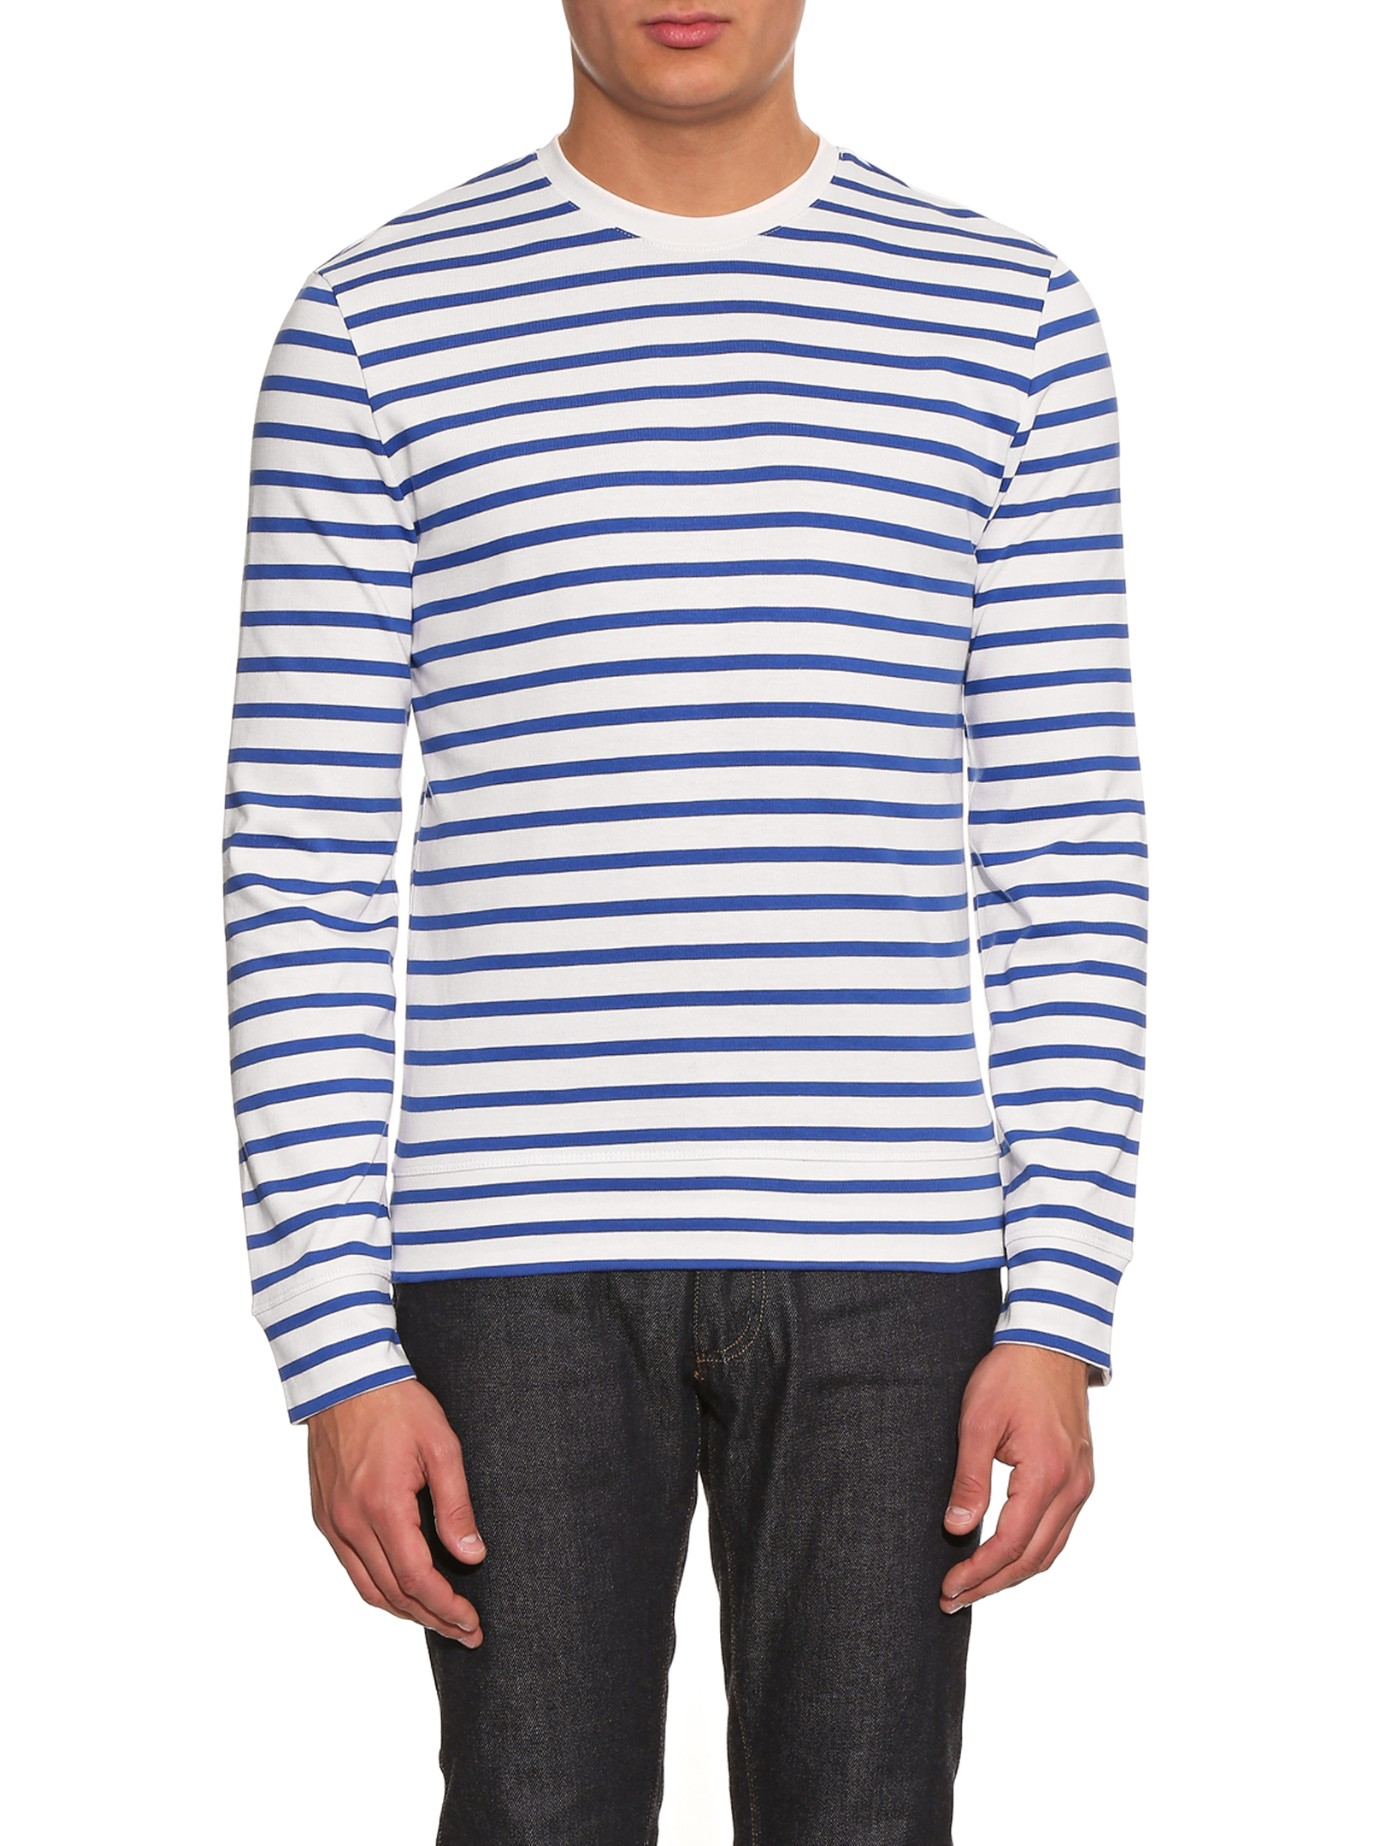 A p c striped cotton t shirt in white for men lyst for Apc white t shirt